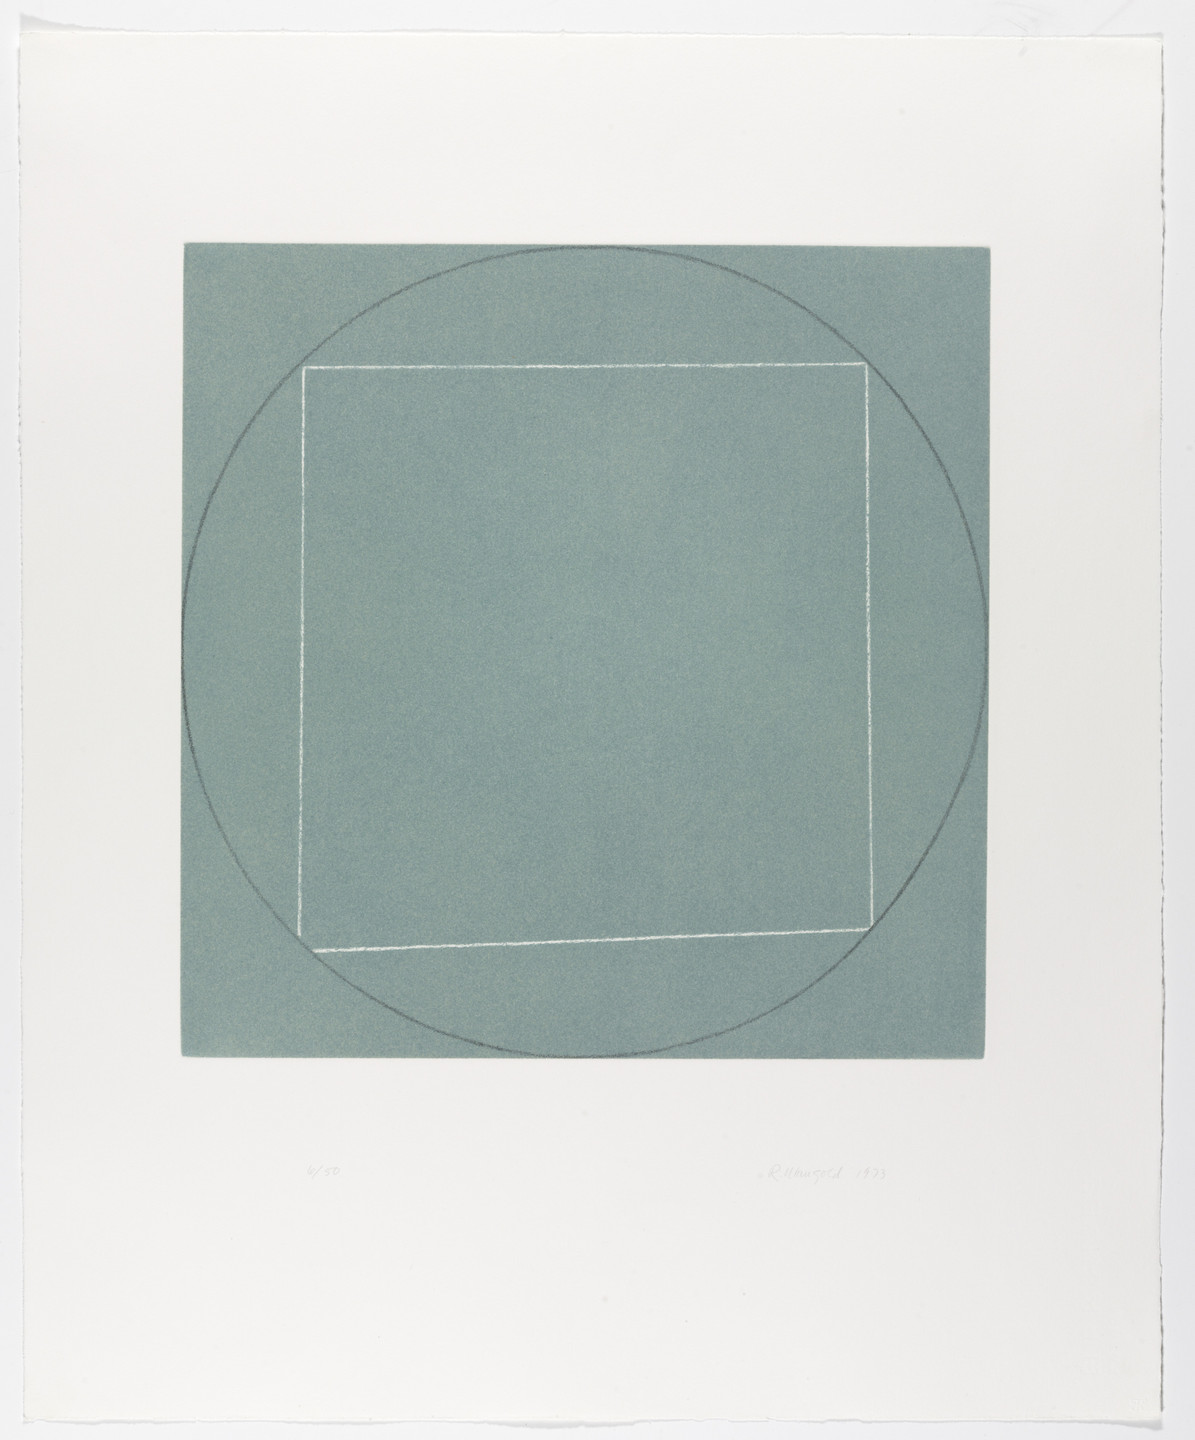 Robert Mangold. Untitled from Seven Aquatints. 1973 (published 1974)